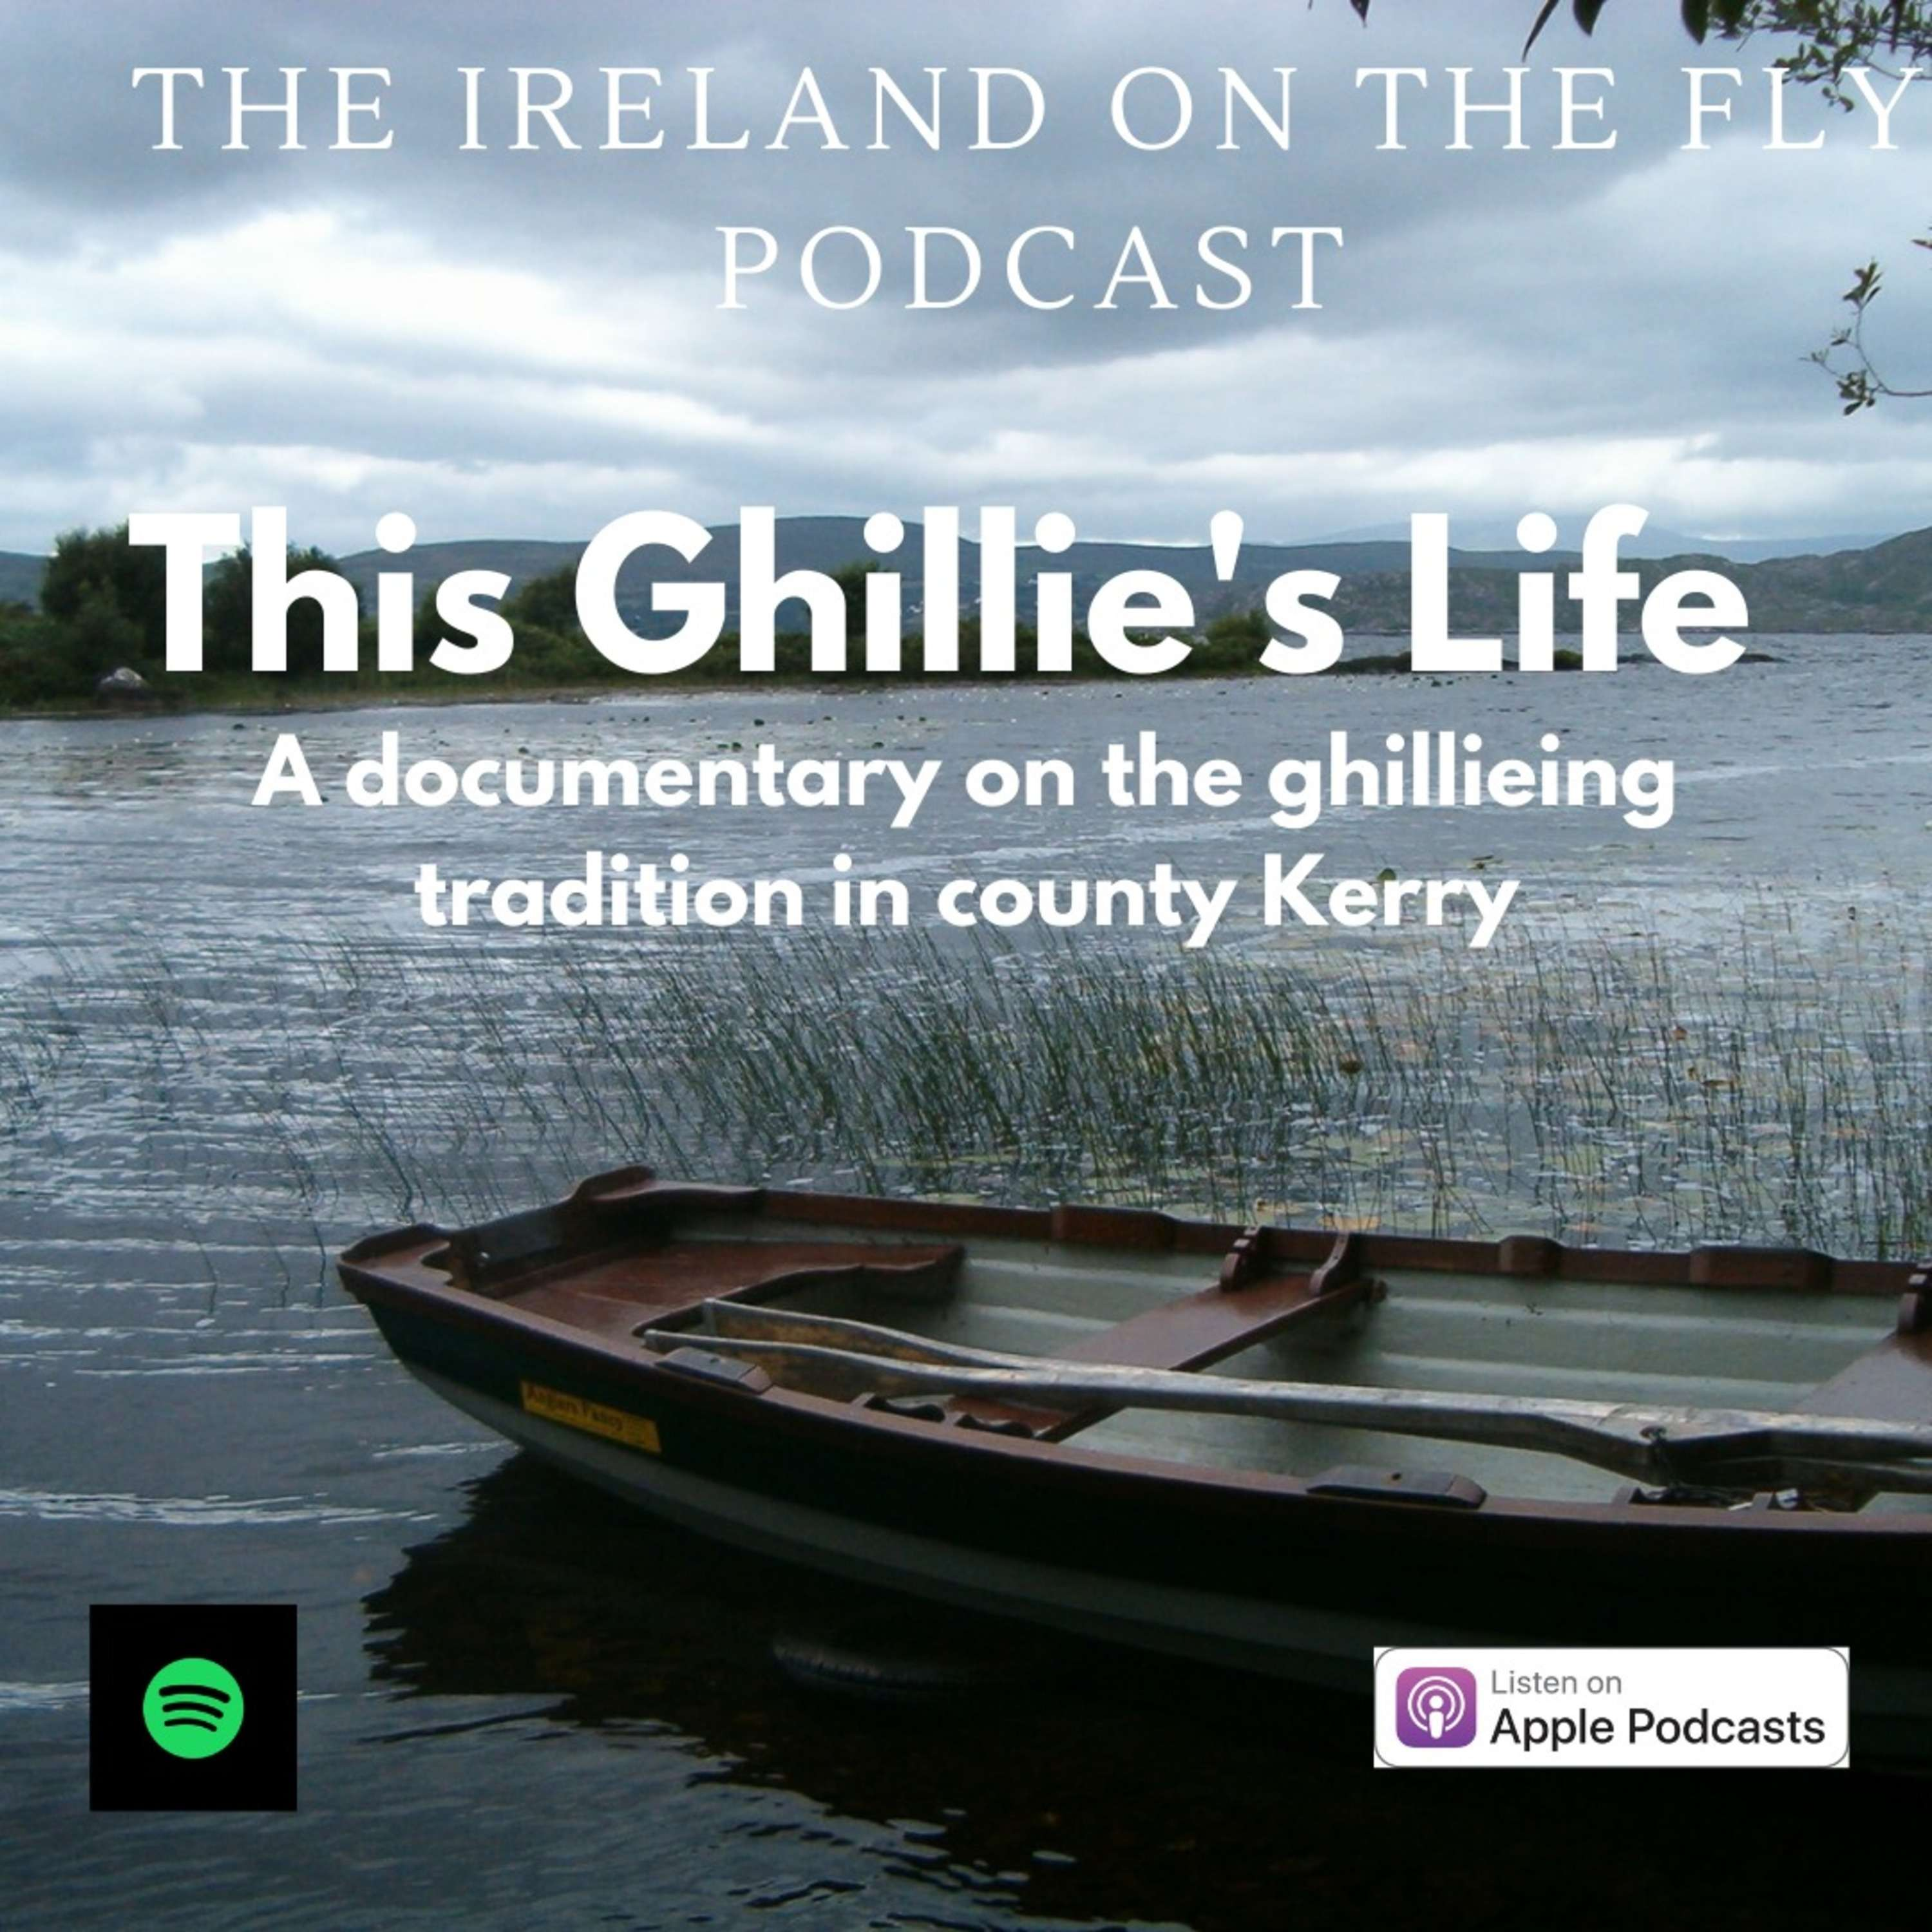 This Ghillie's Life: a documentary on the ghillieing tradition in county Kerry